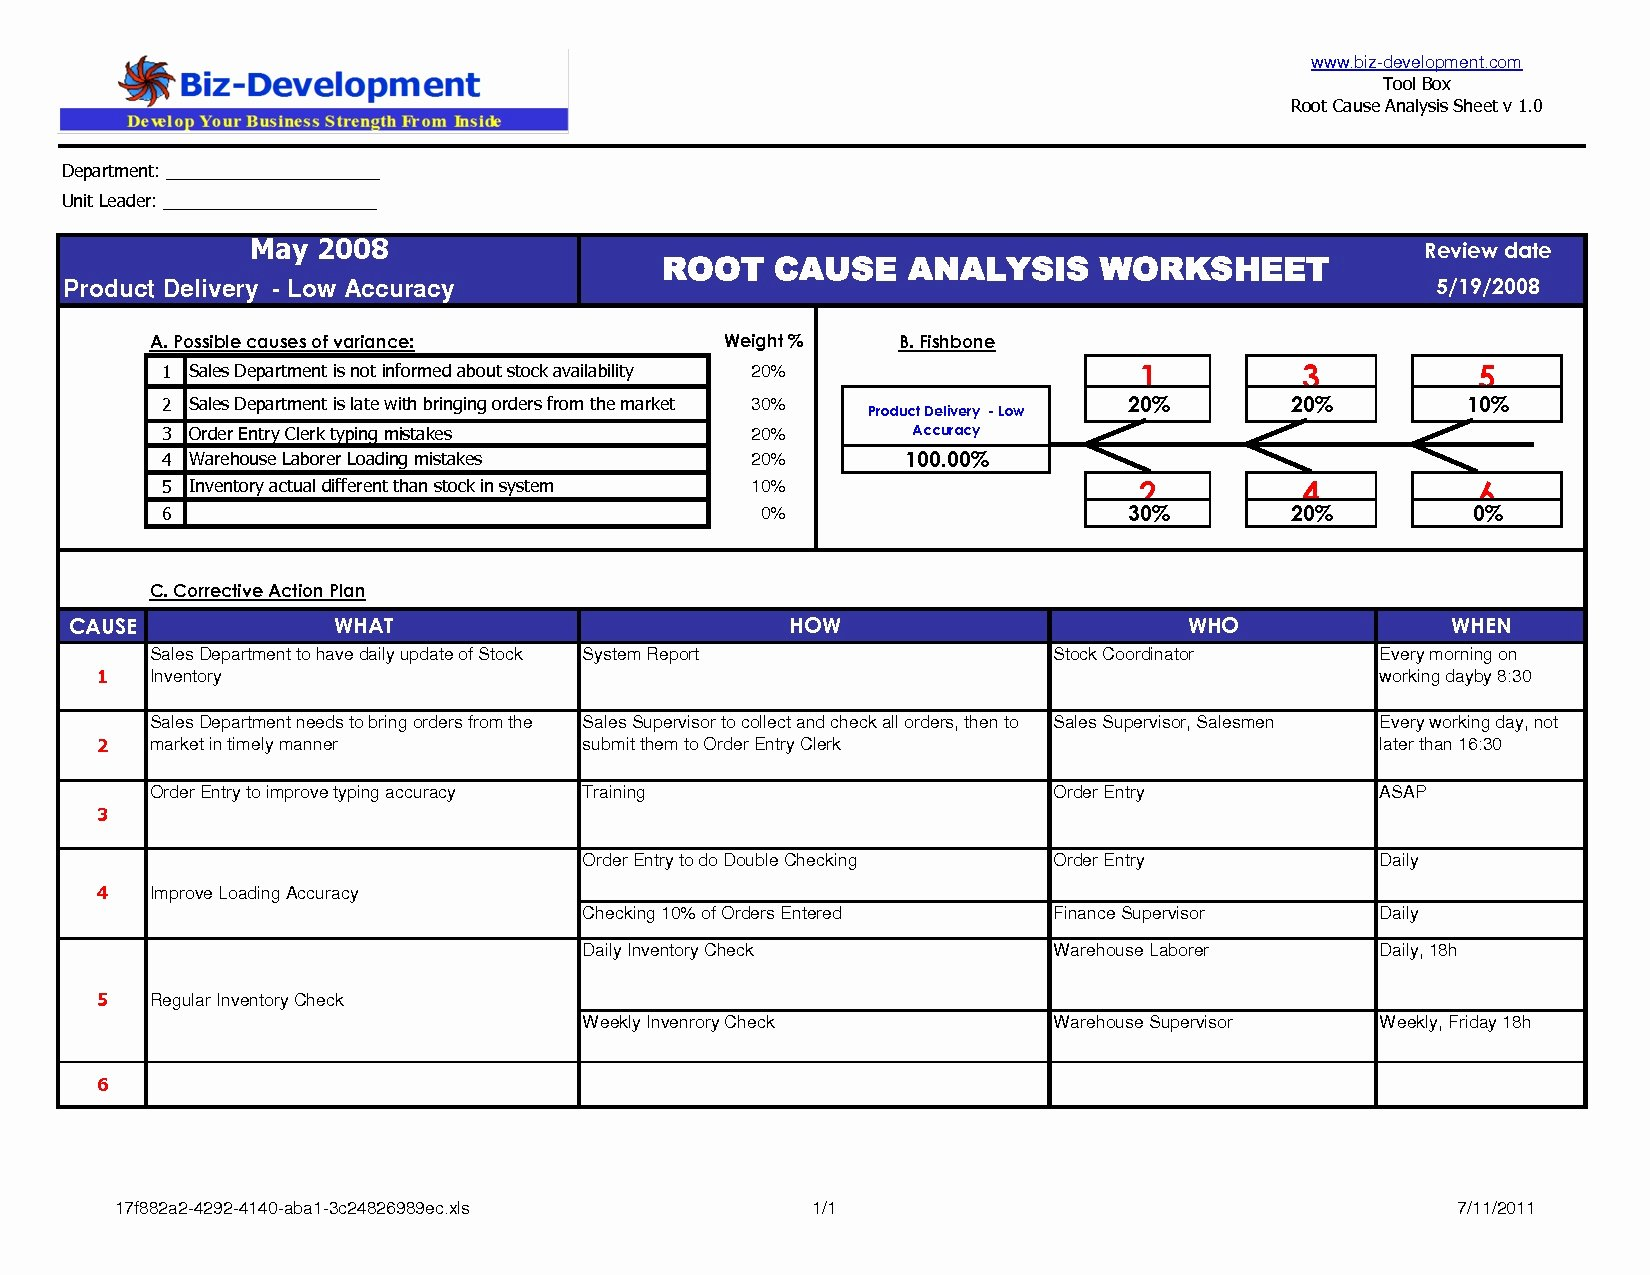 Root Cause Analysis Excel Template Lovely Code Review Report Template Excel Downtime Tracking